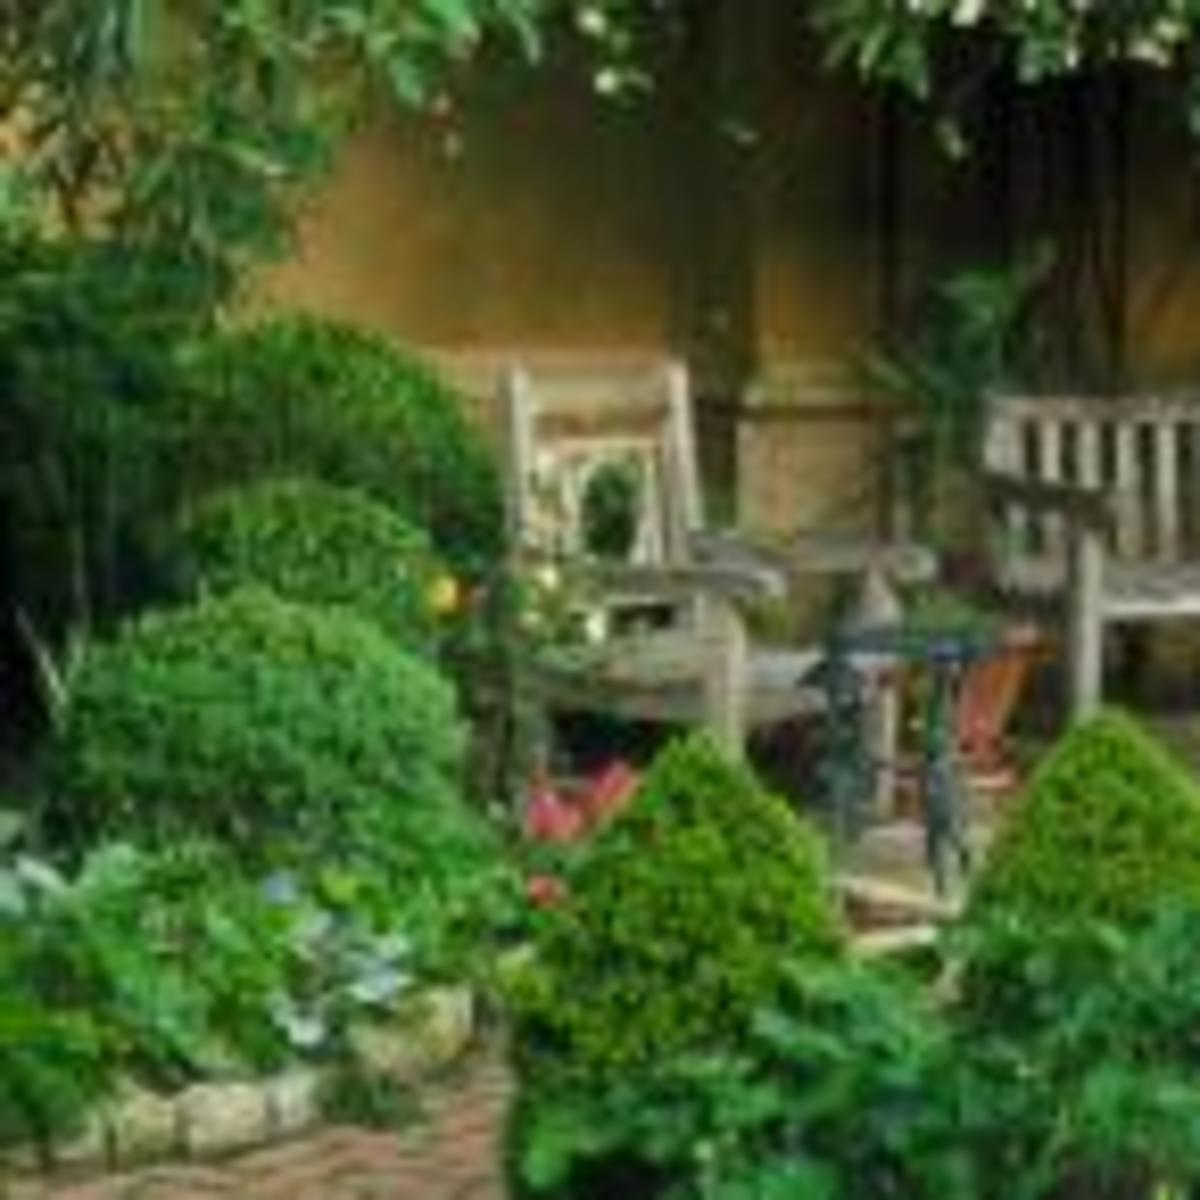 Seating should compliment the garden and snuggle into the plants